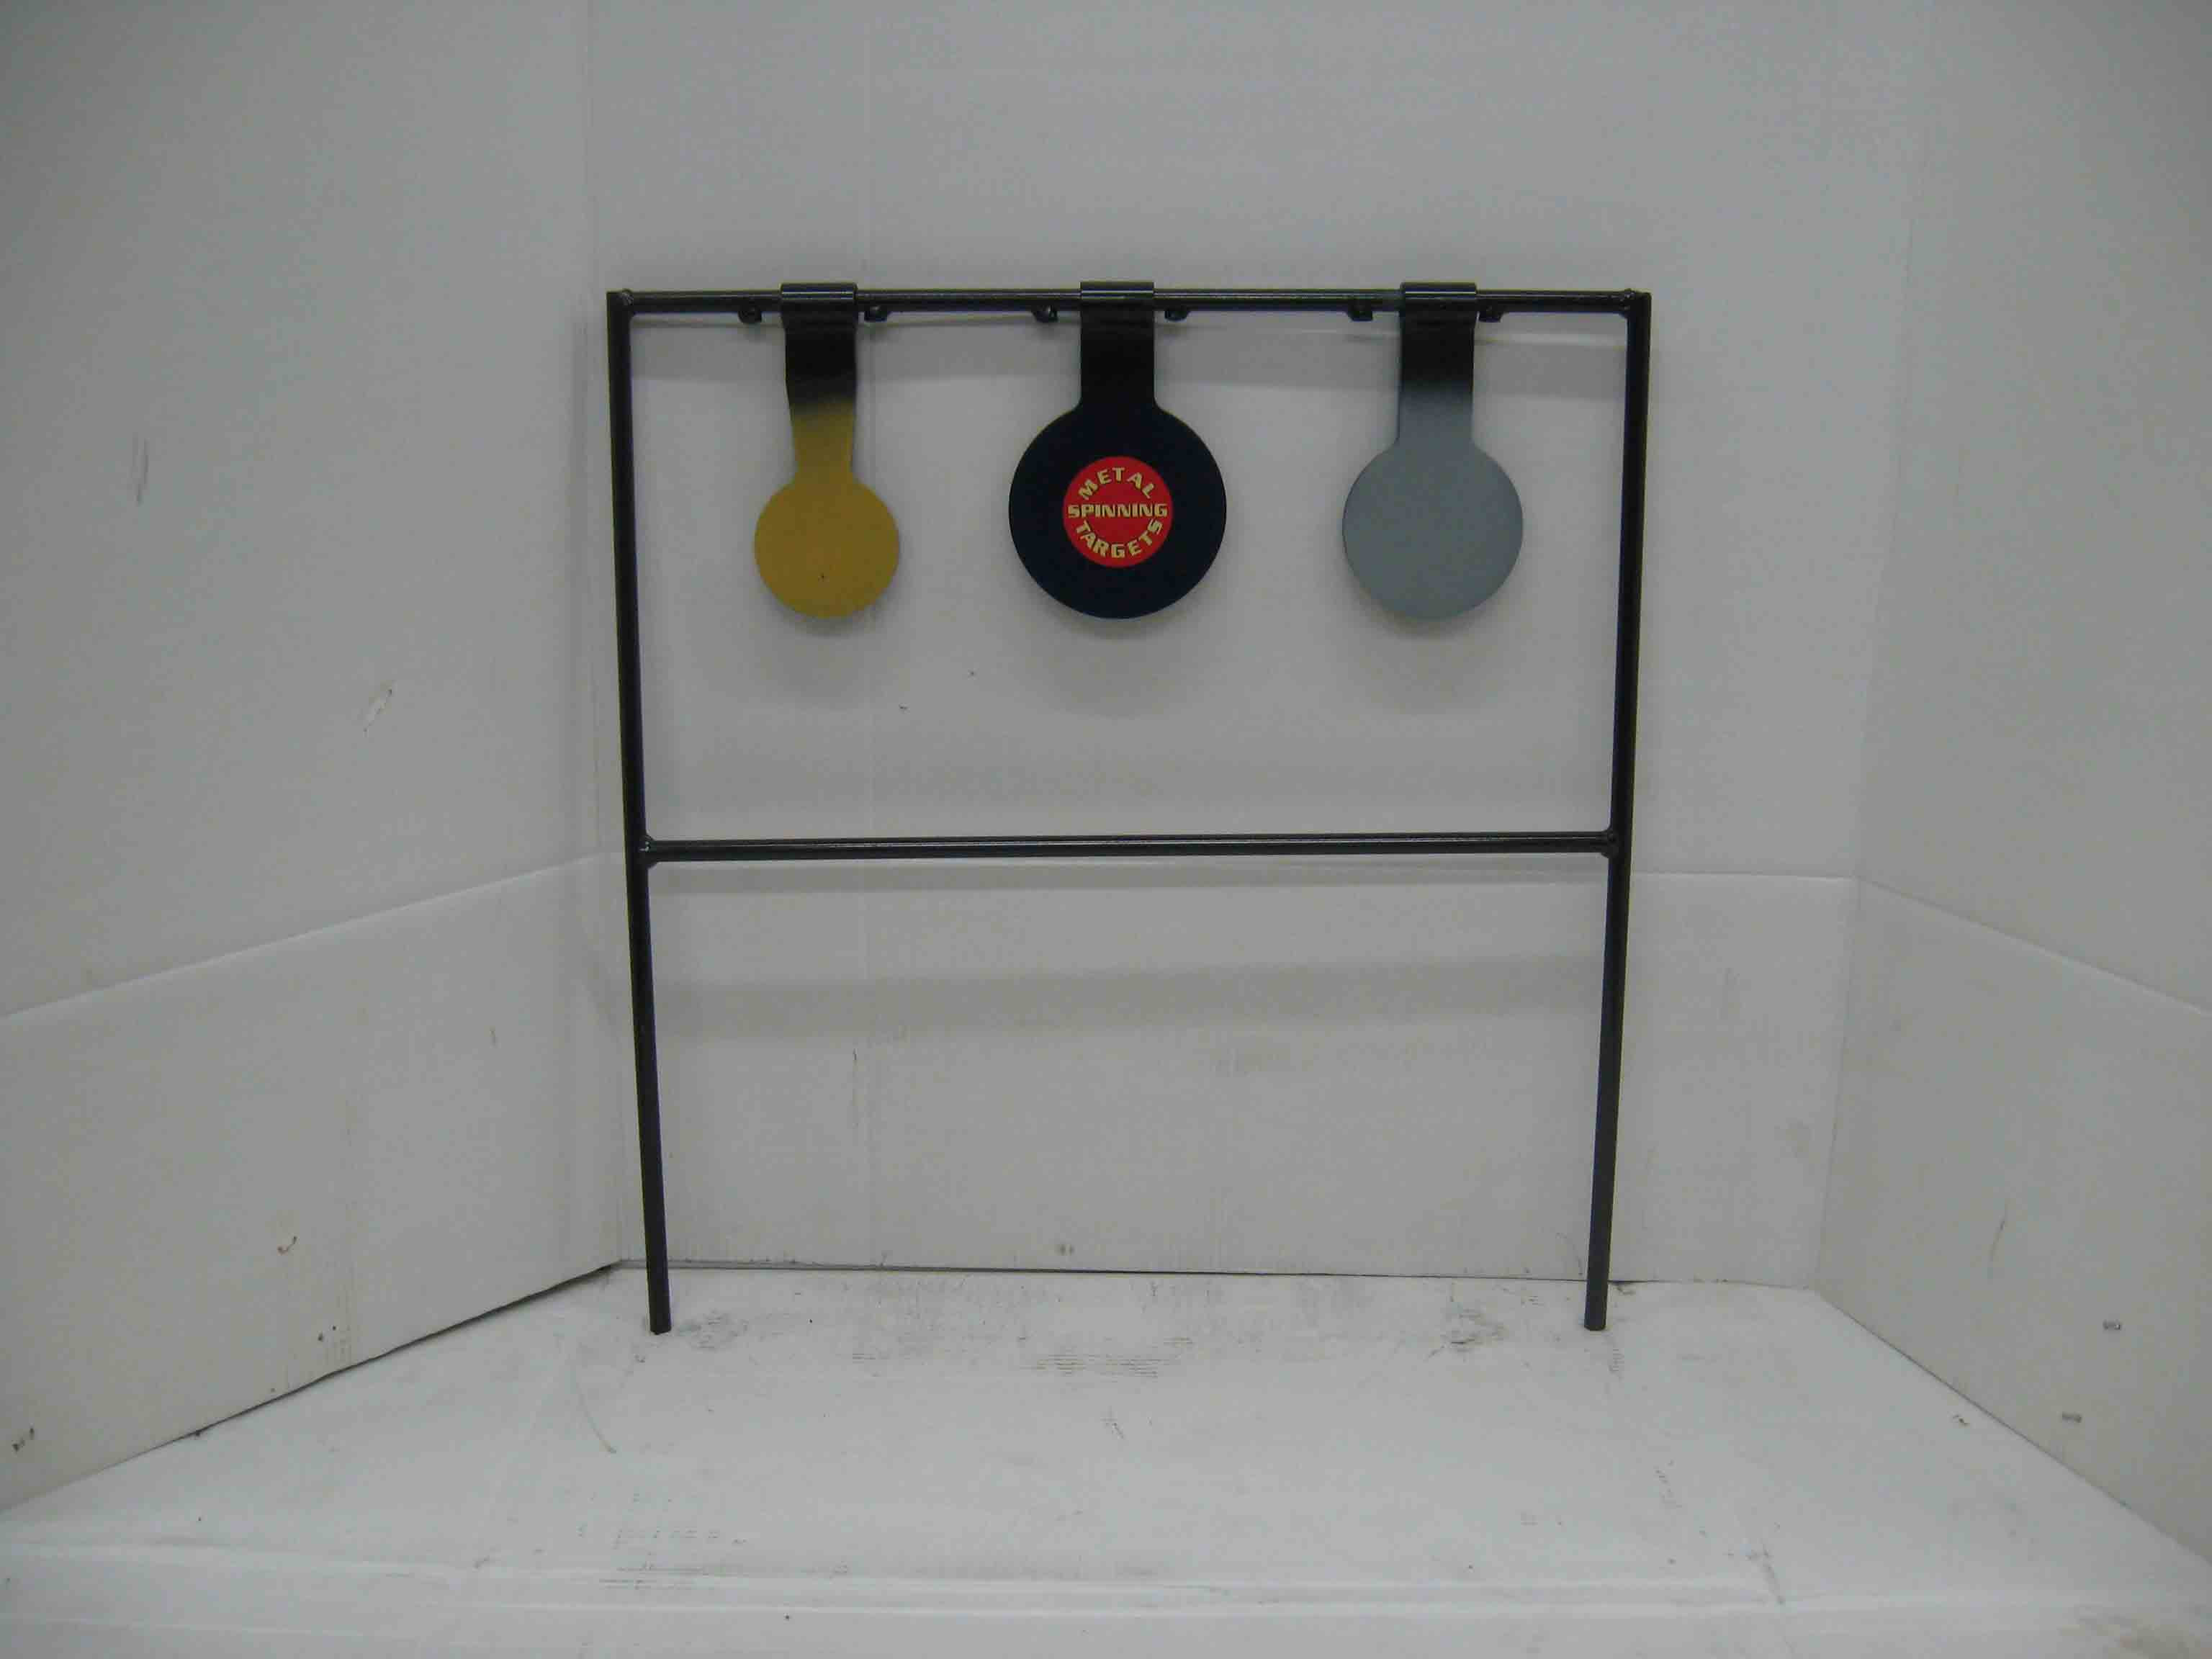 Triple metal shooting metal targets